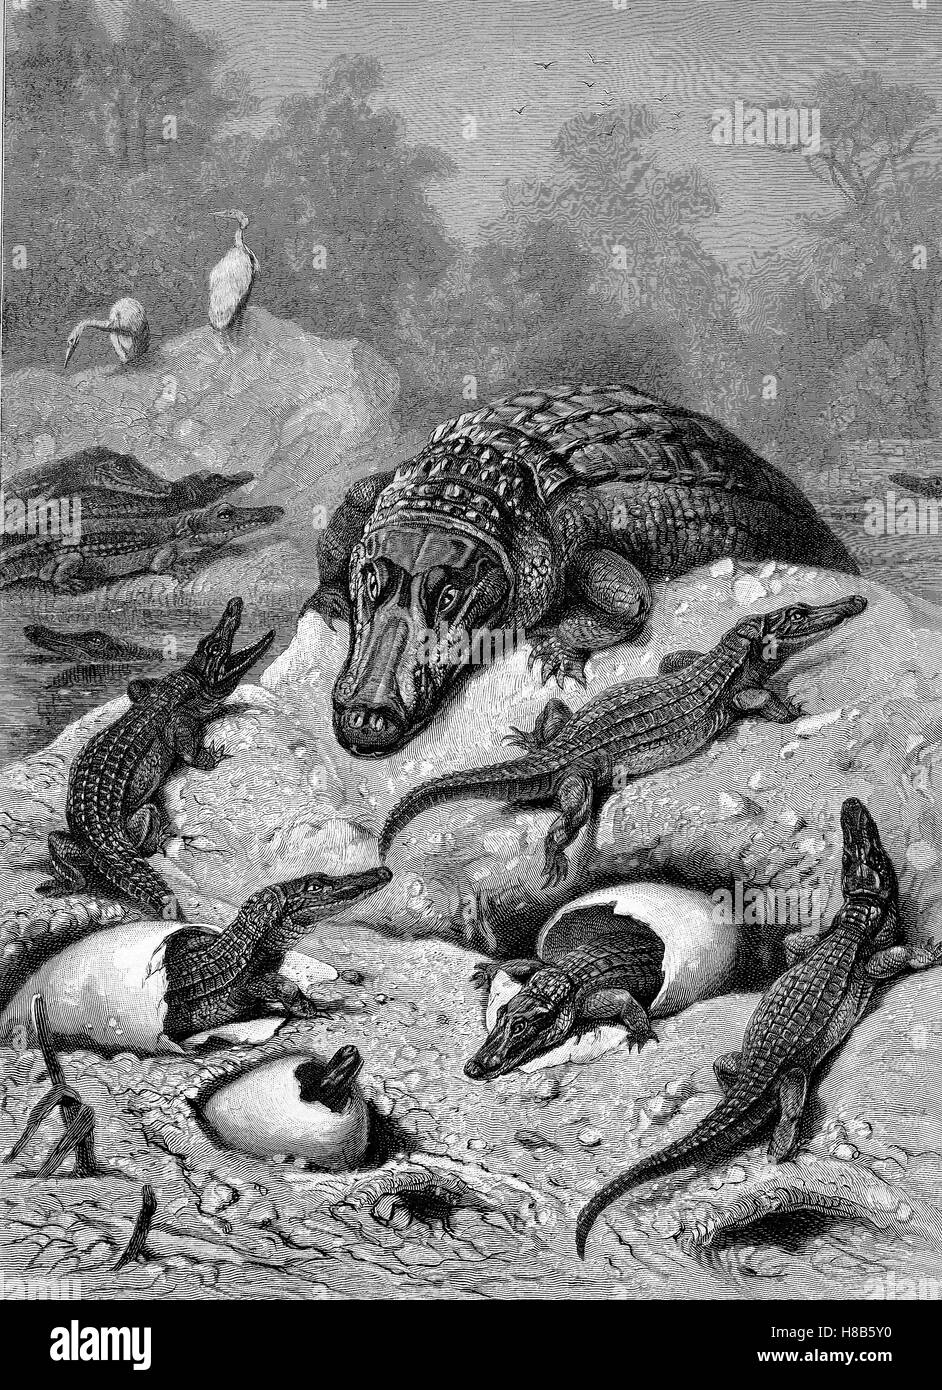 Breeding of alligators, eggs and newly hatched animals, Woodcut from 1892 - Stock Image